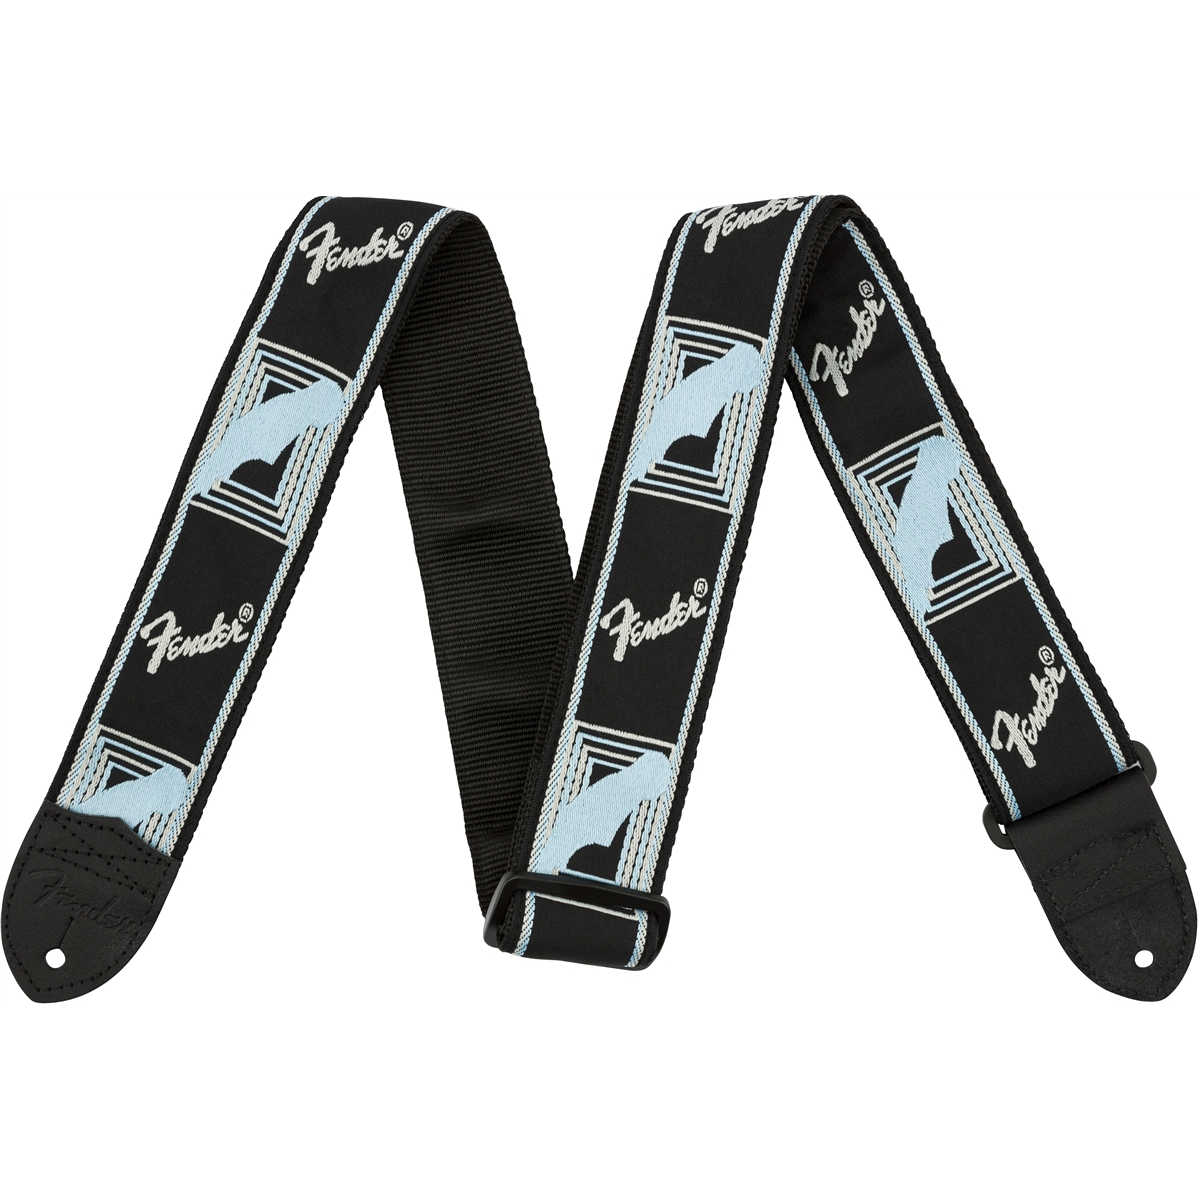 "Fender® 2"" Monogrammed Straps, Black/Light Grey/Blue"